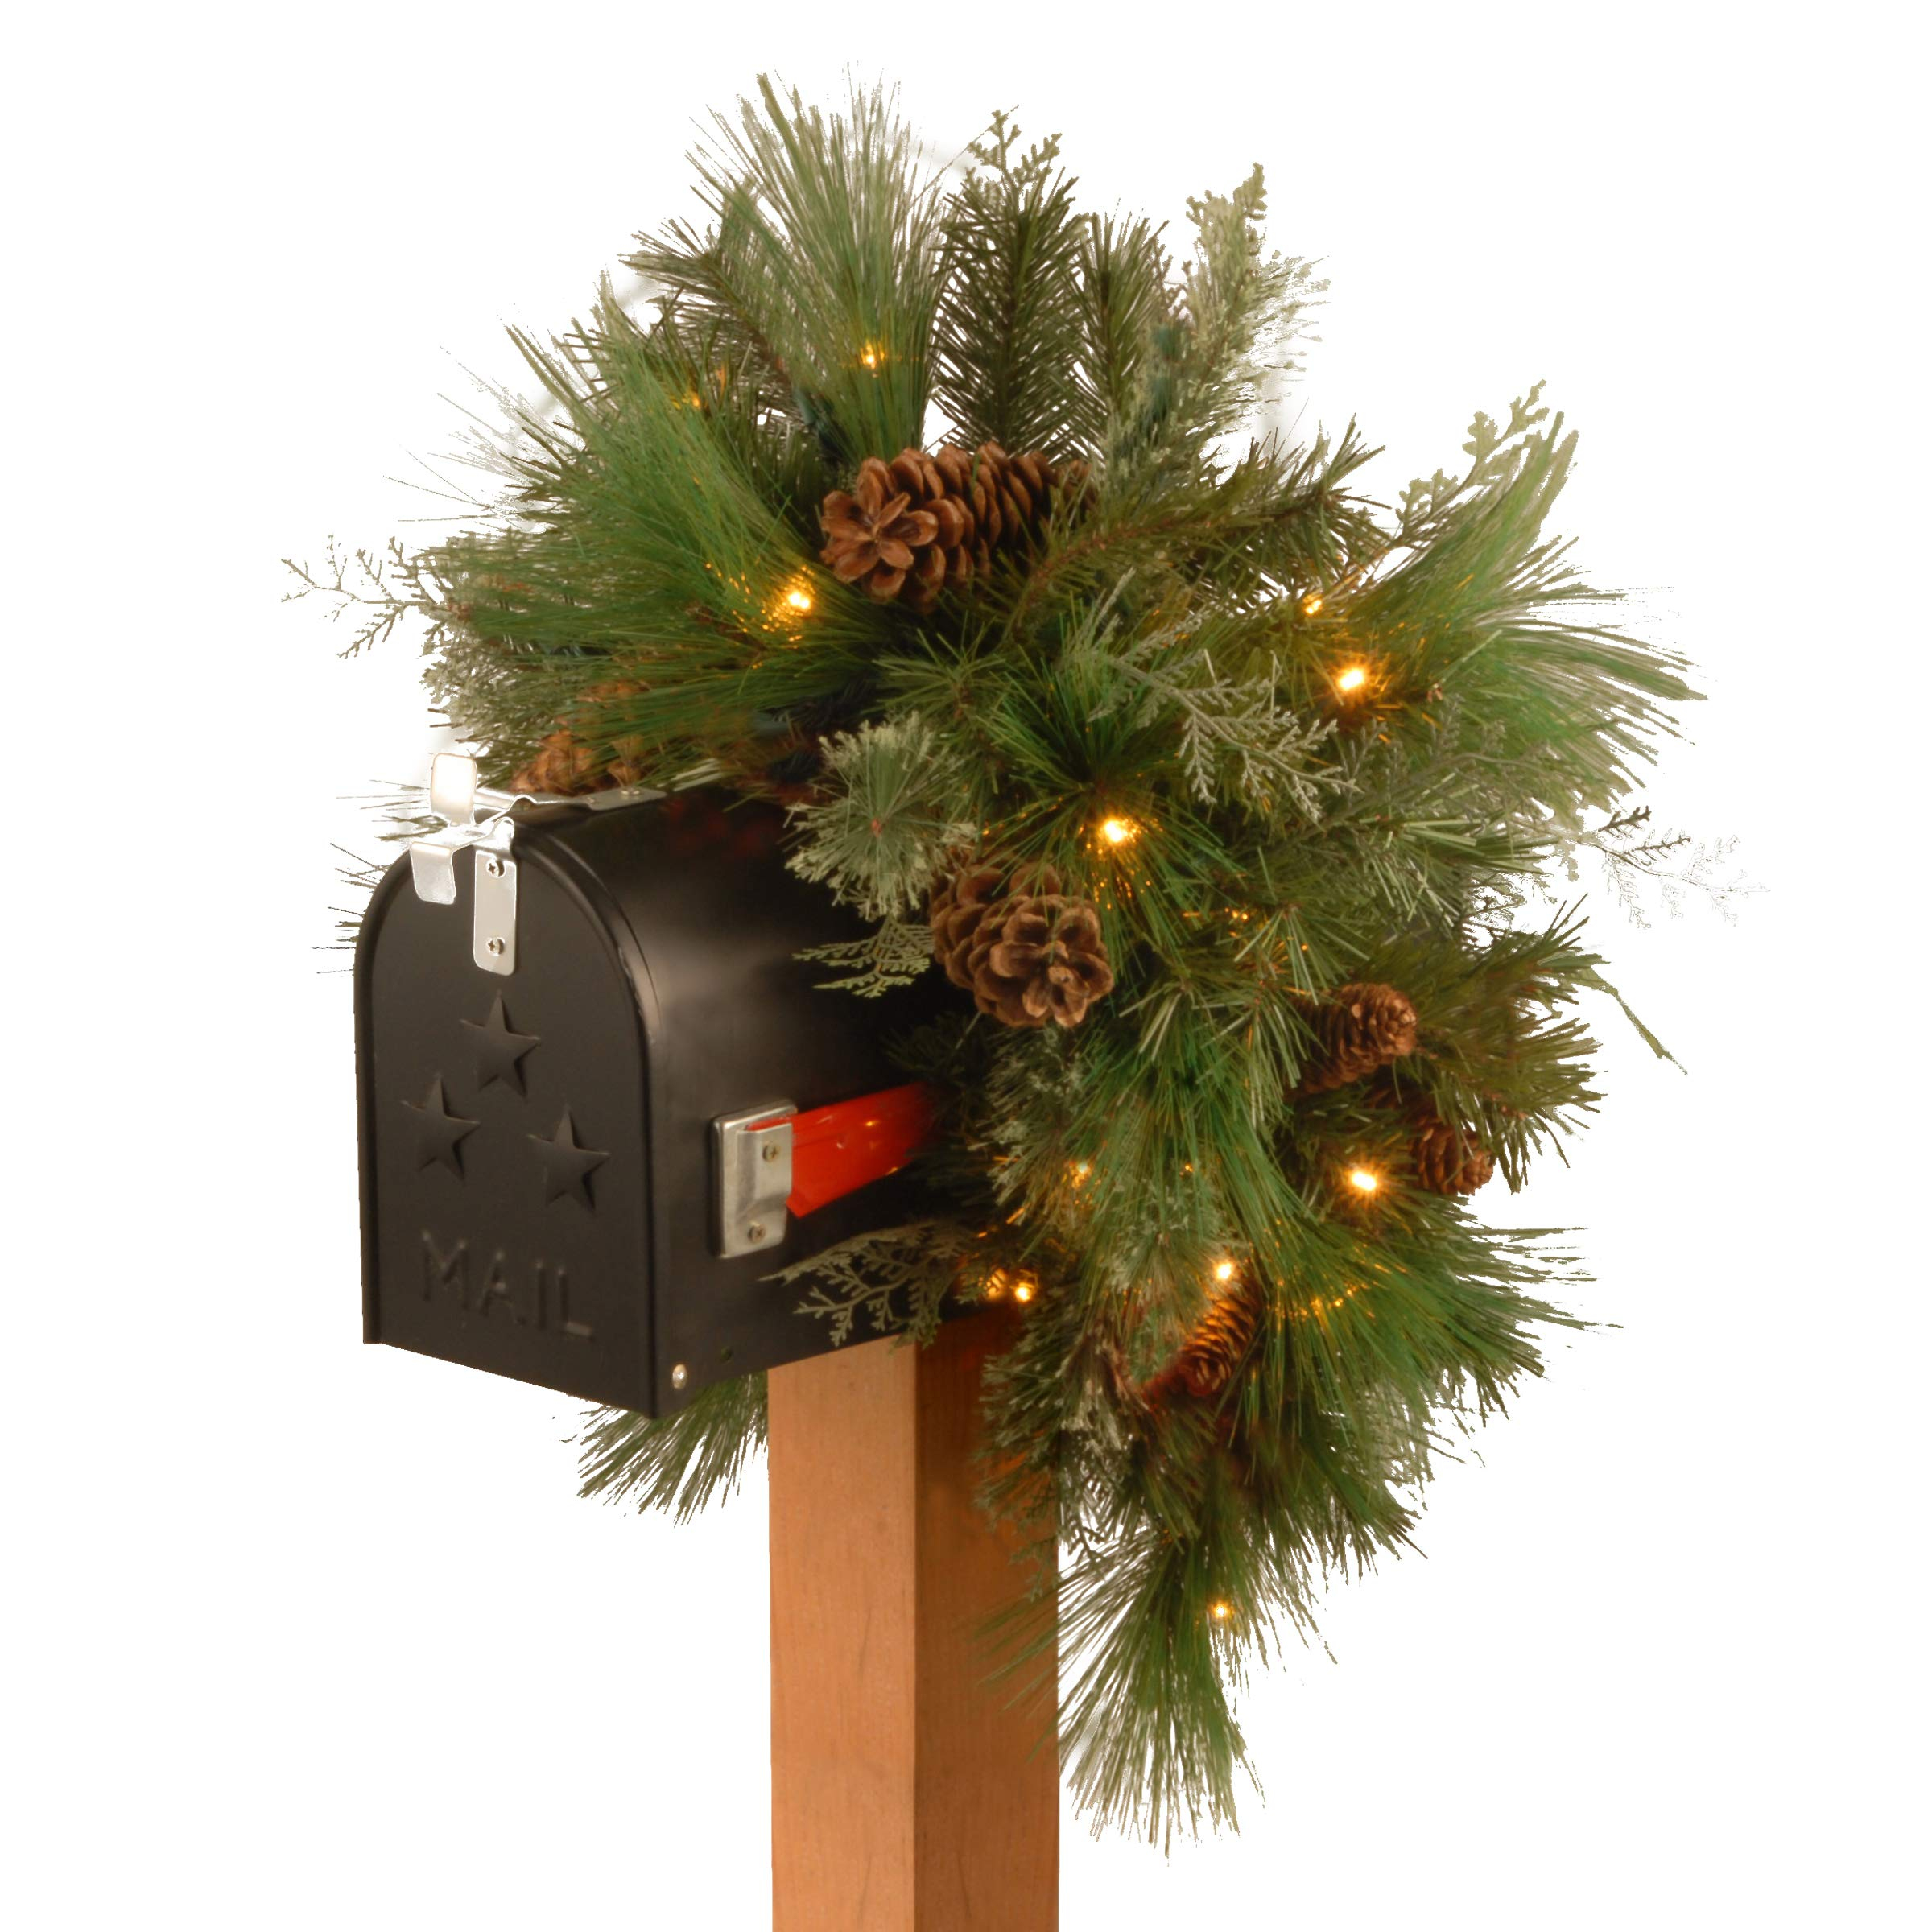 National Tree 36 Inch Decorative Collection White Pine Mailbox Swag with 63 Battery Operated Soft White and Red LED Lights (DC13-116-36MB-1)